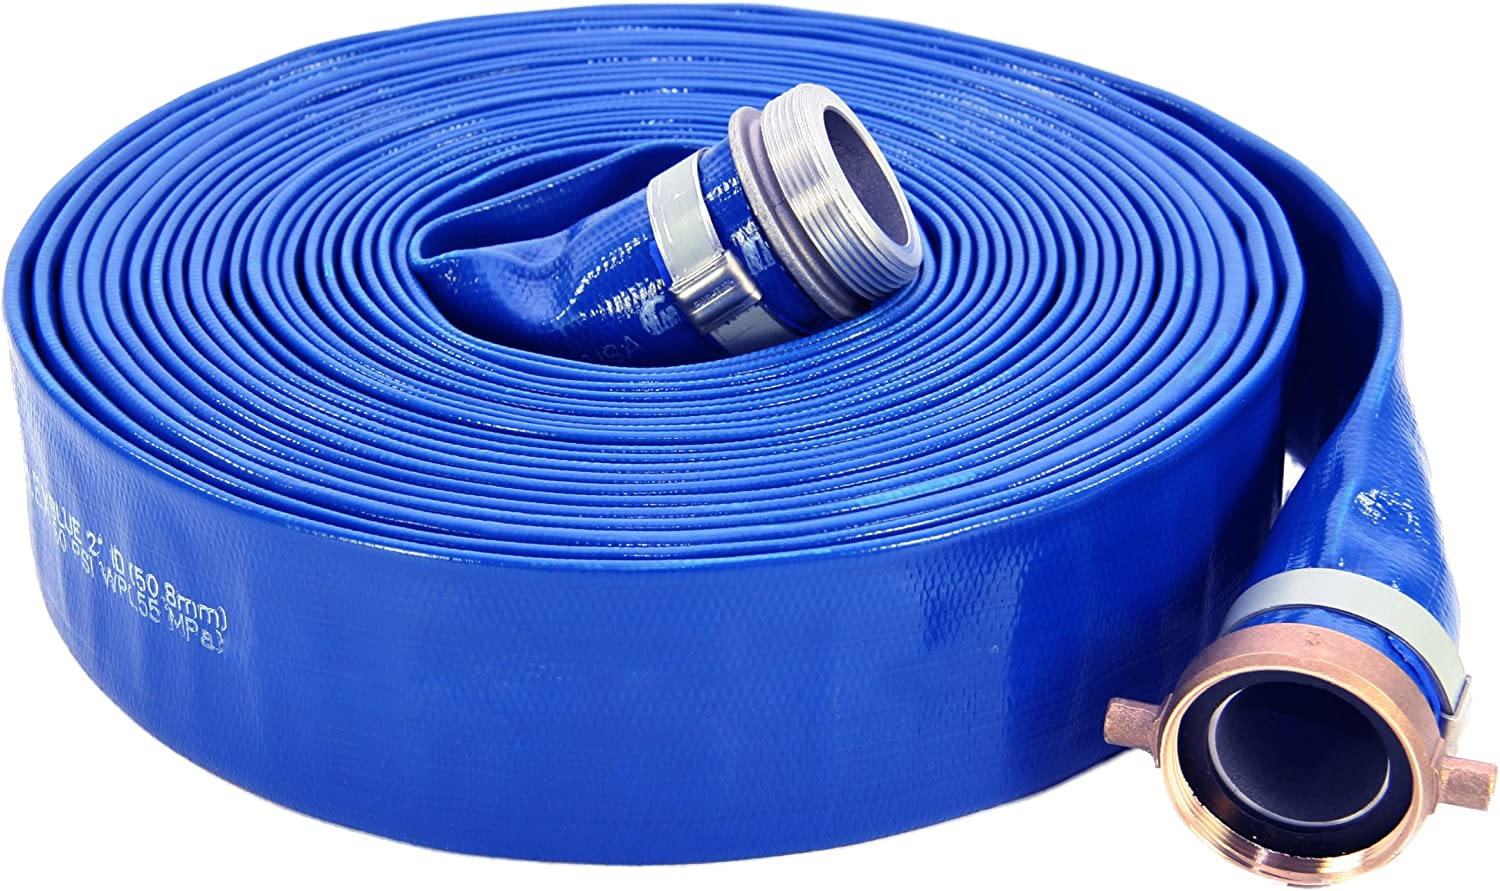 "Abbott Rubber 1147-1500-50 PVC Discharge Hose Assembly, Blue, 1-1/2"" Male X Female NPSM, 70 psi Max Pressure, 50' Length, 1-1/2"" ID"